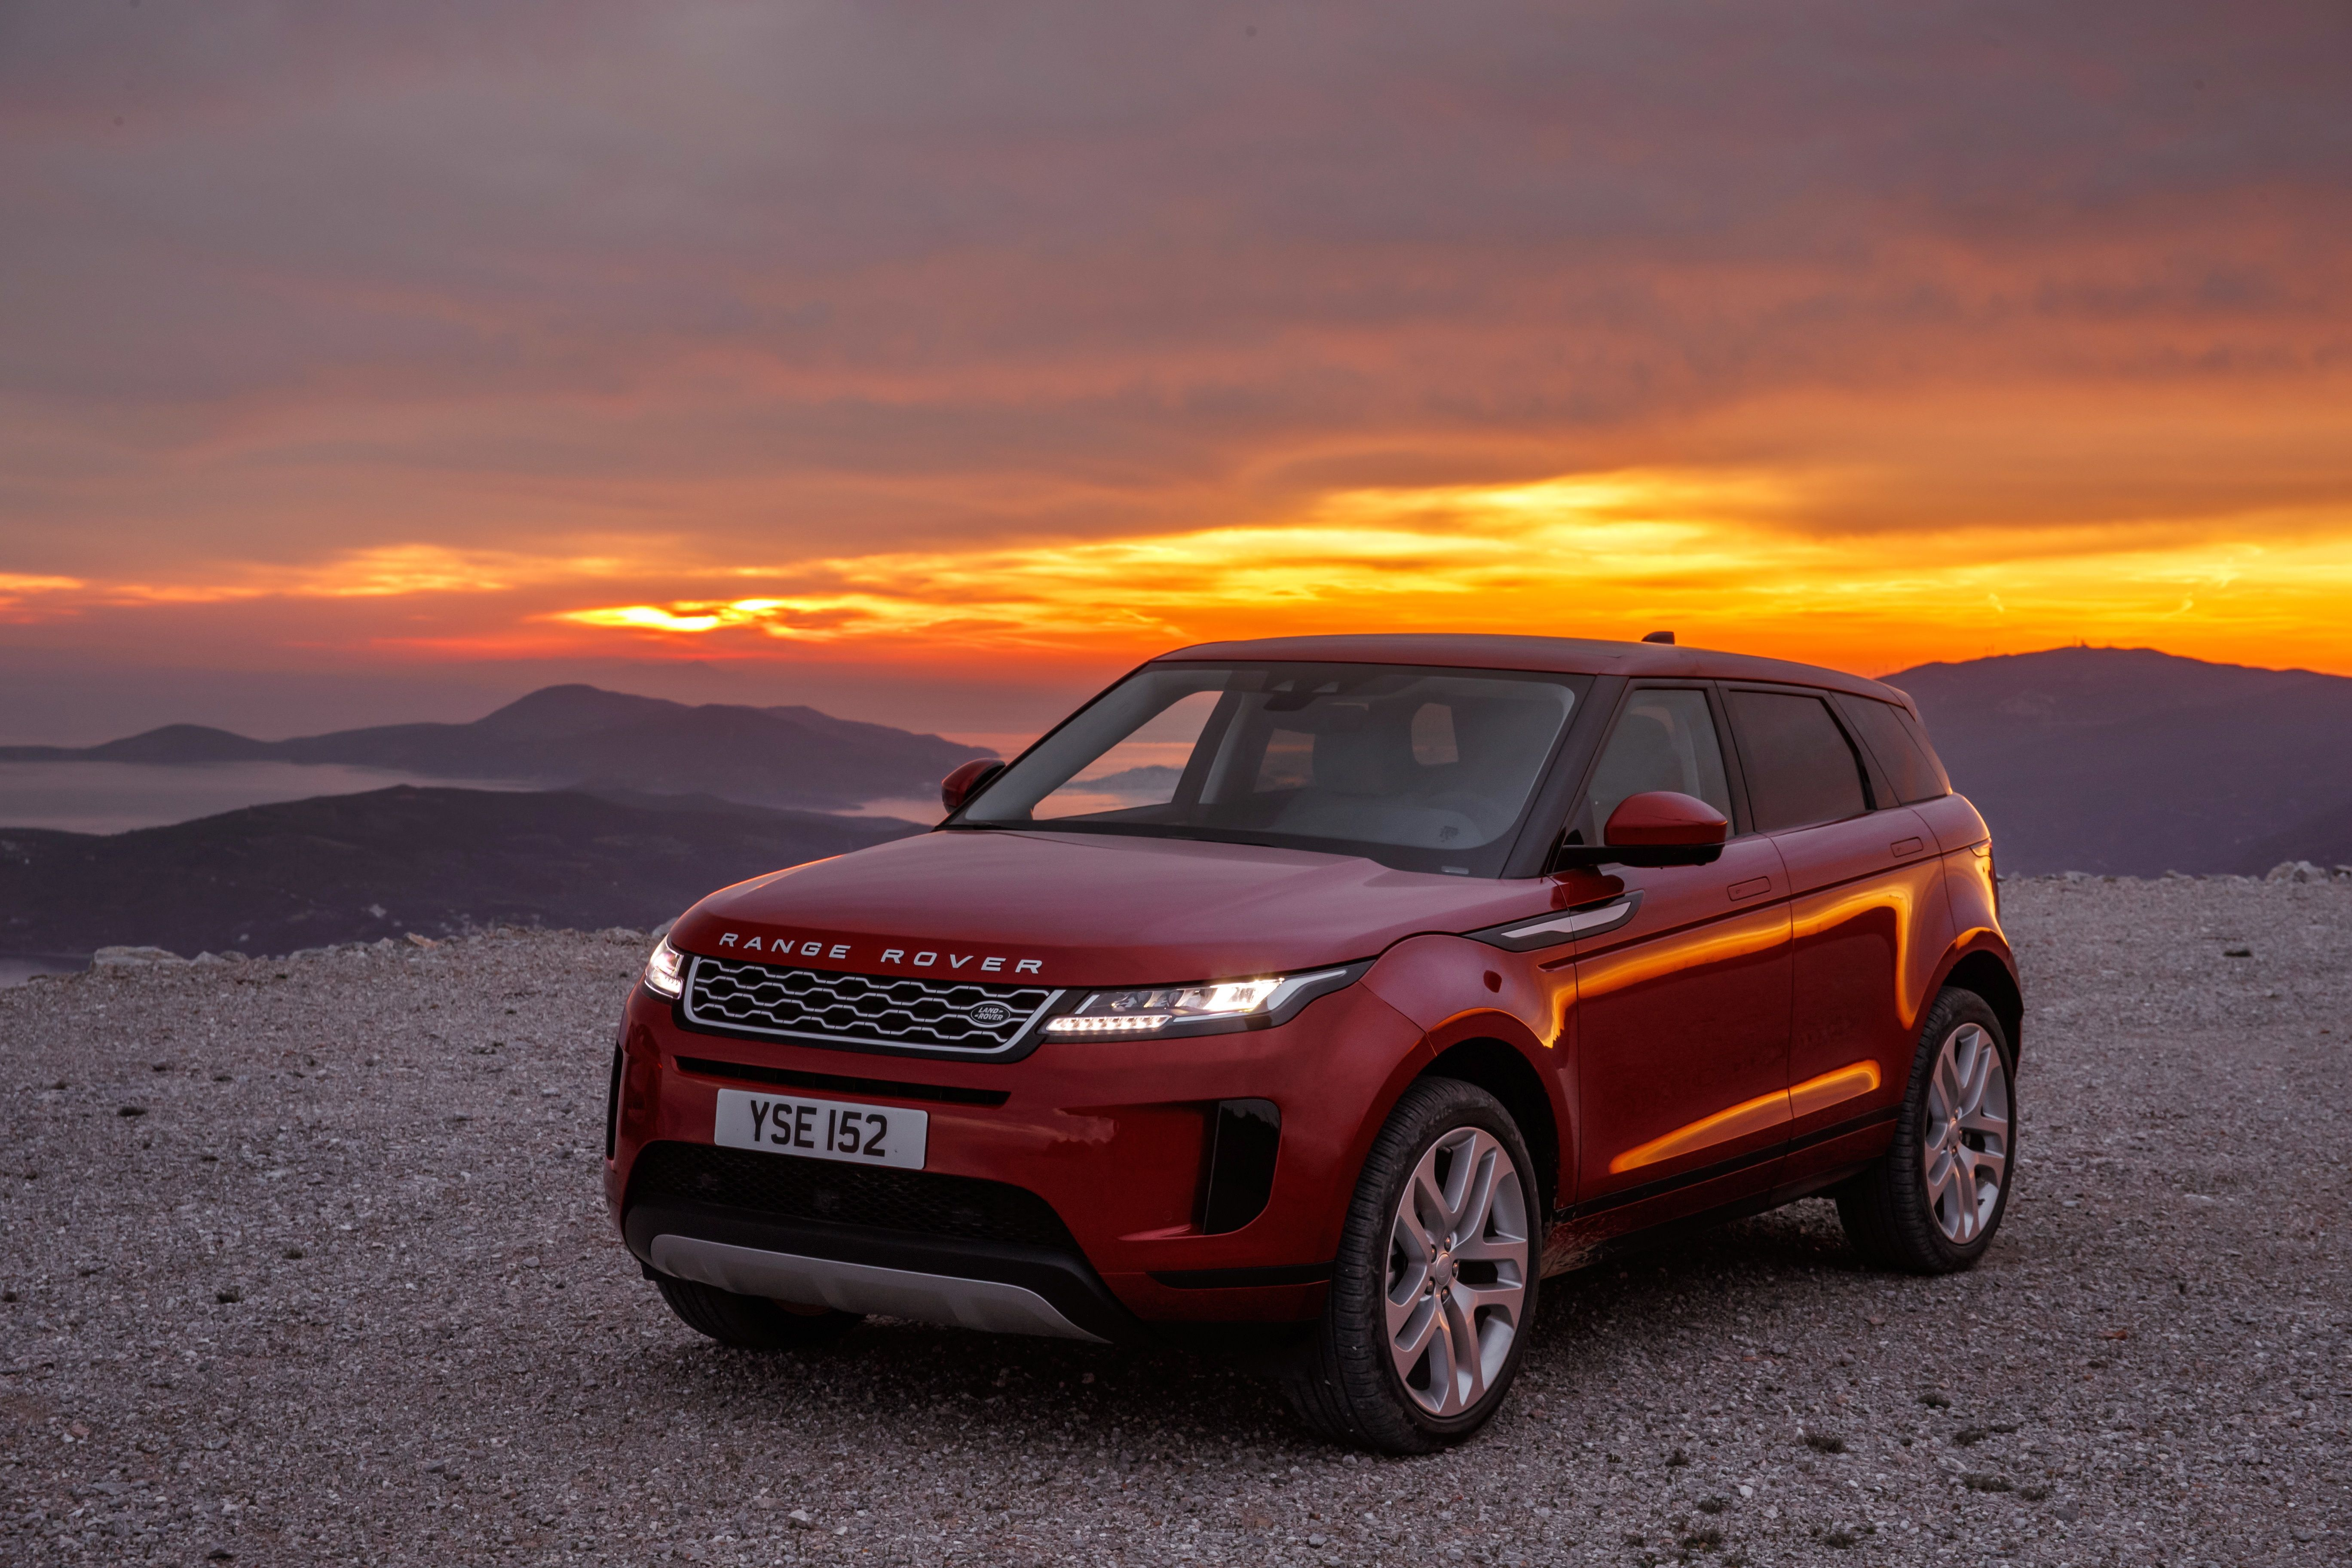 2019 Range Rover Evoque D240 S (With images) Range rover